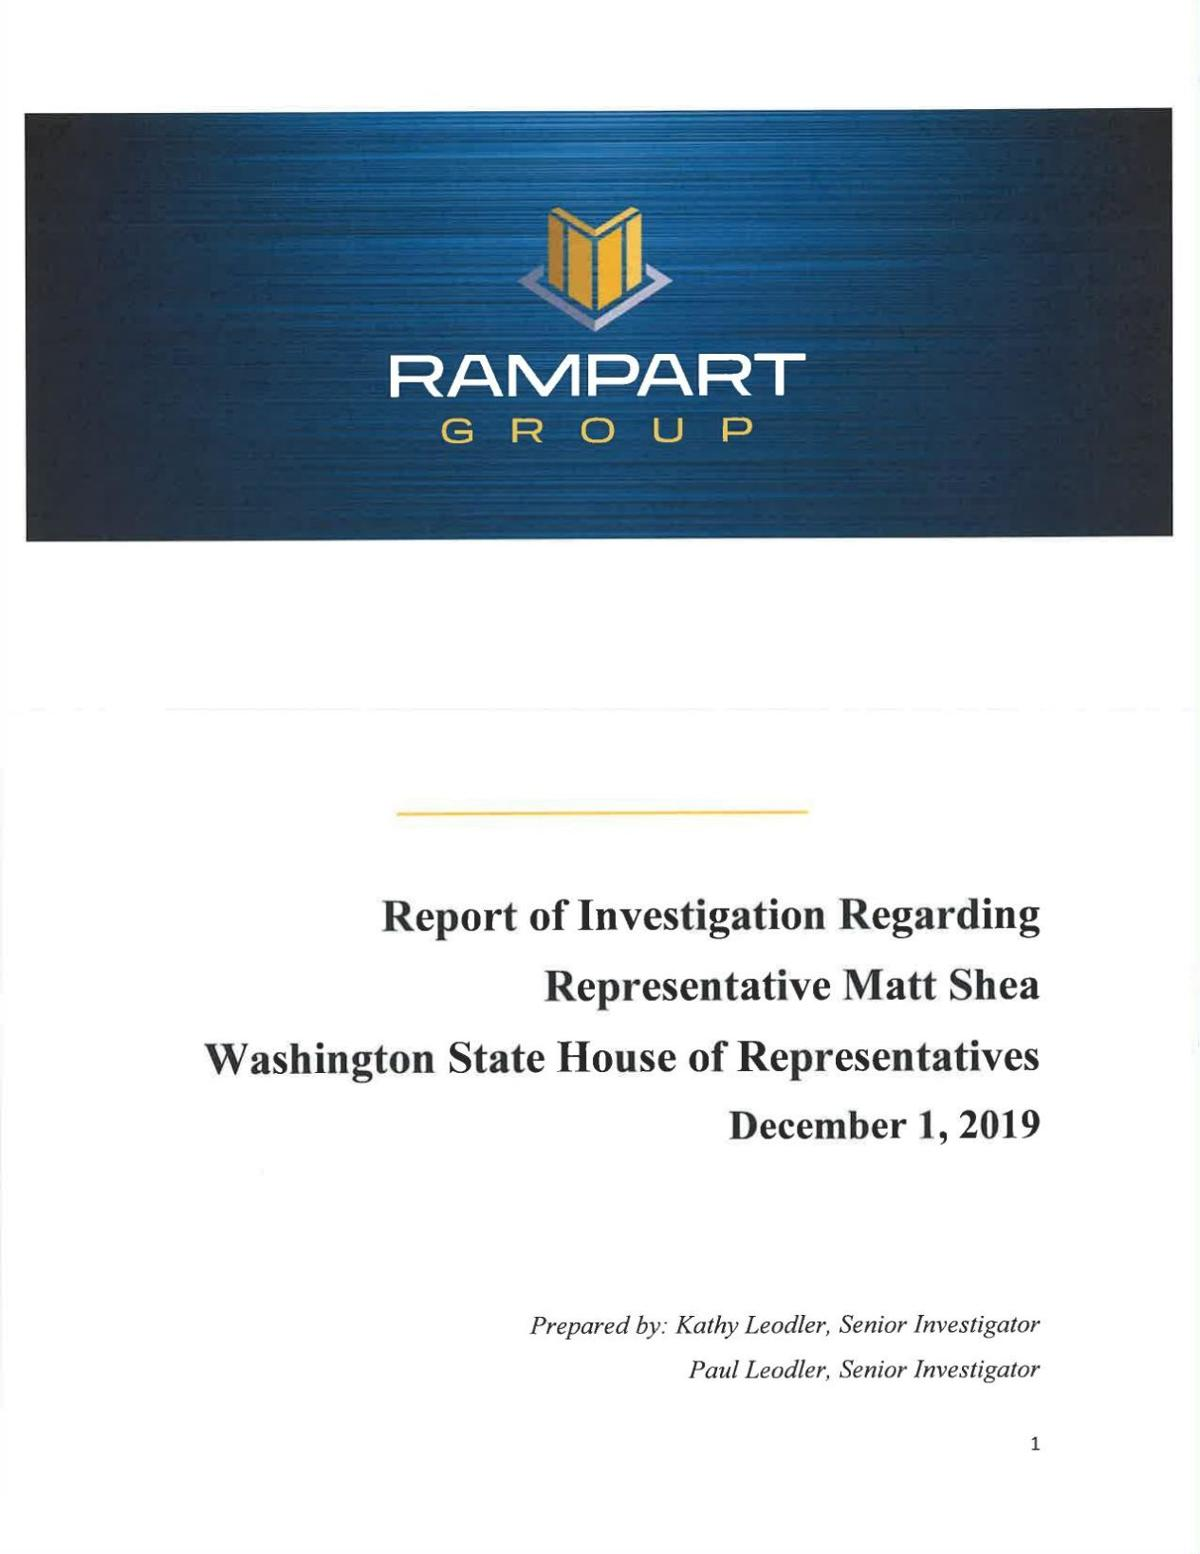 Read It Here: Rampart Group Investigative Report on State Rep. Matt Shea